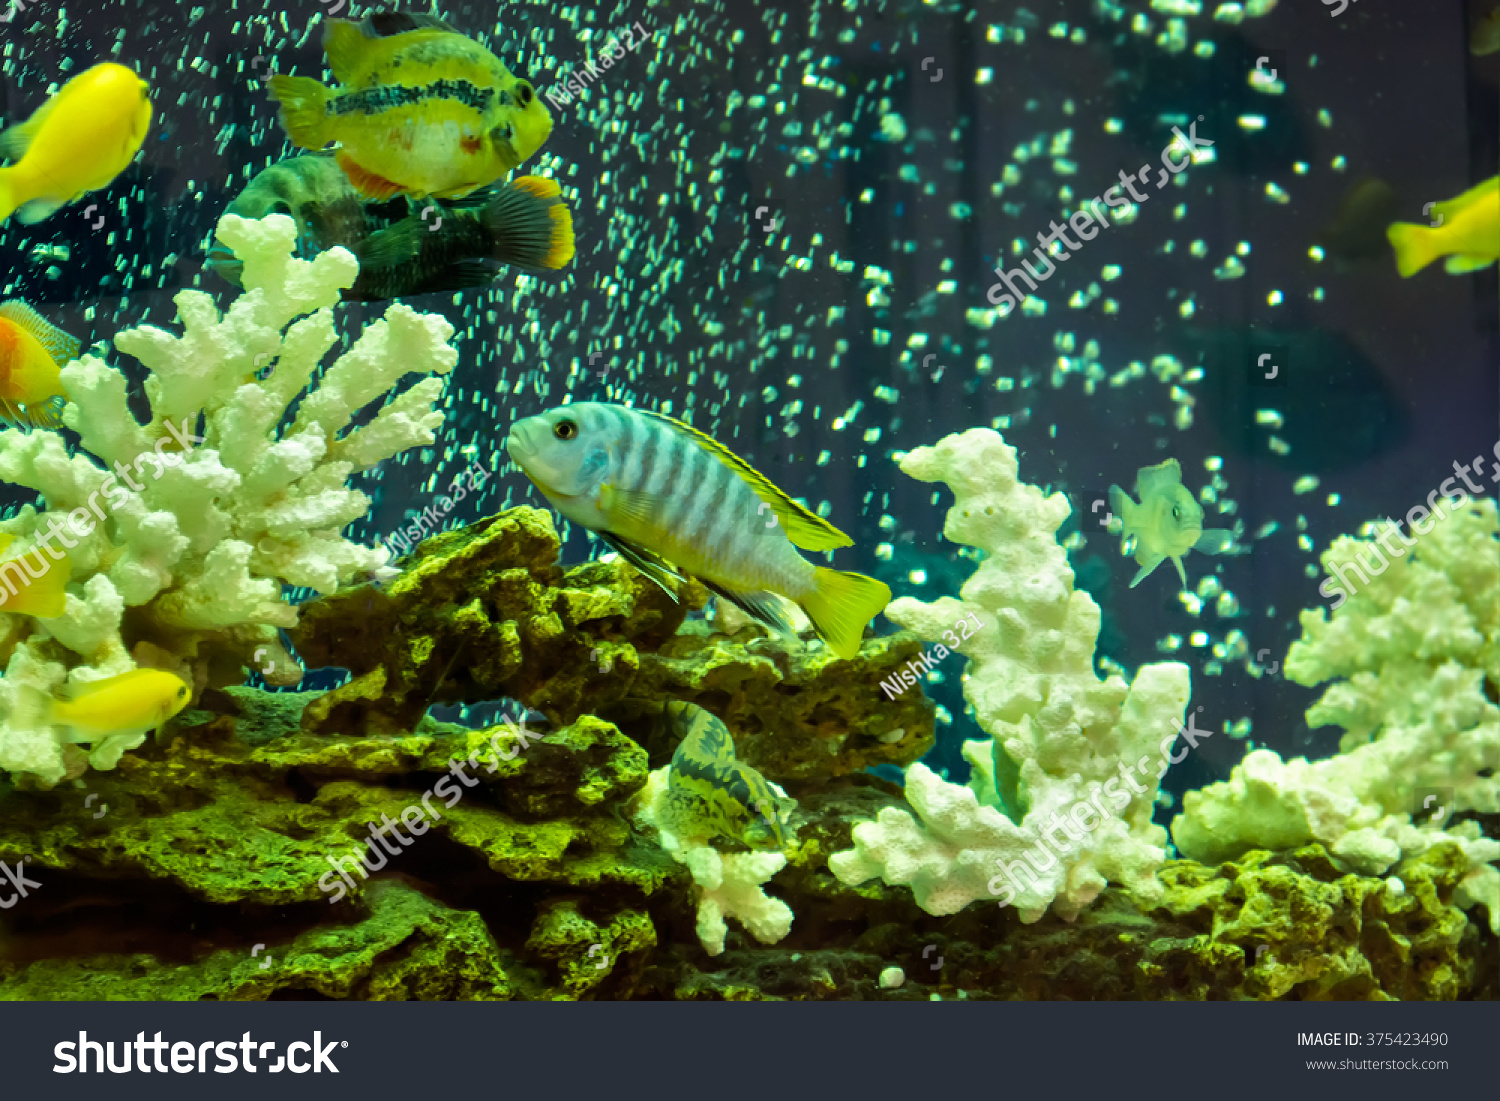 Beautiful View Aquarium Colorful Fishes Stock Photo (Royalty Free ...